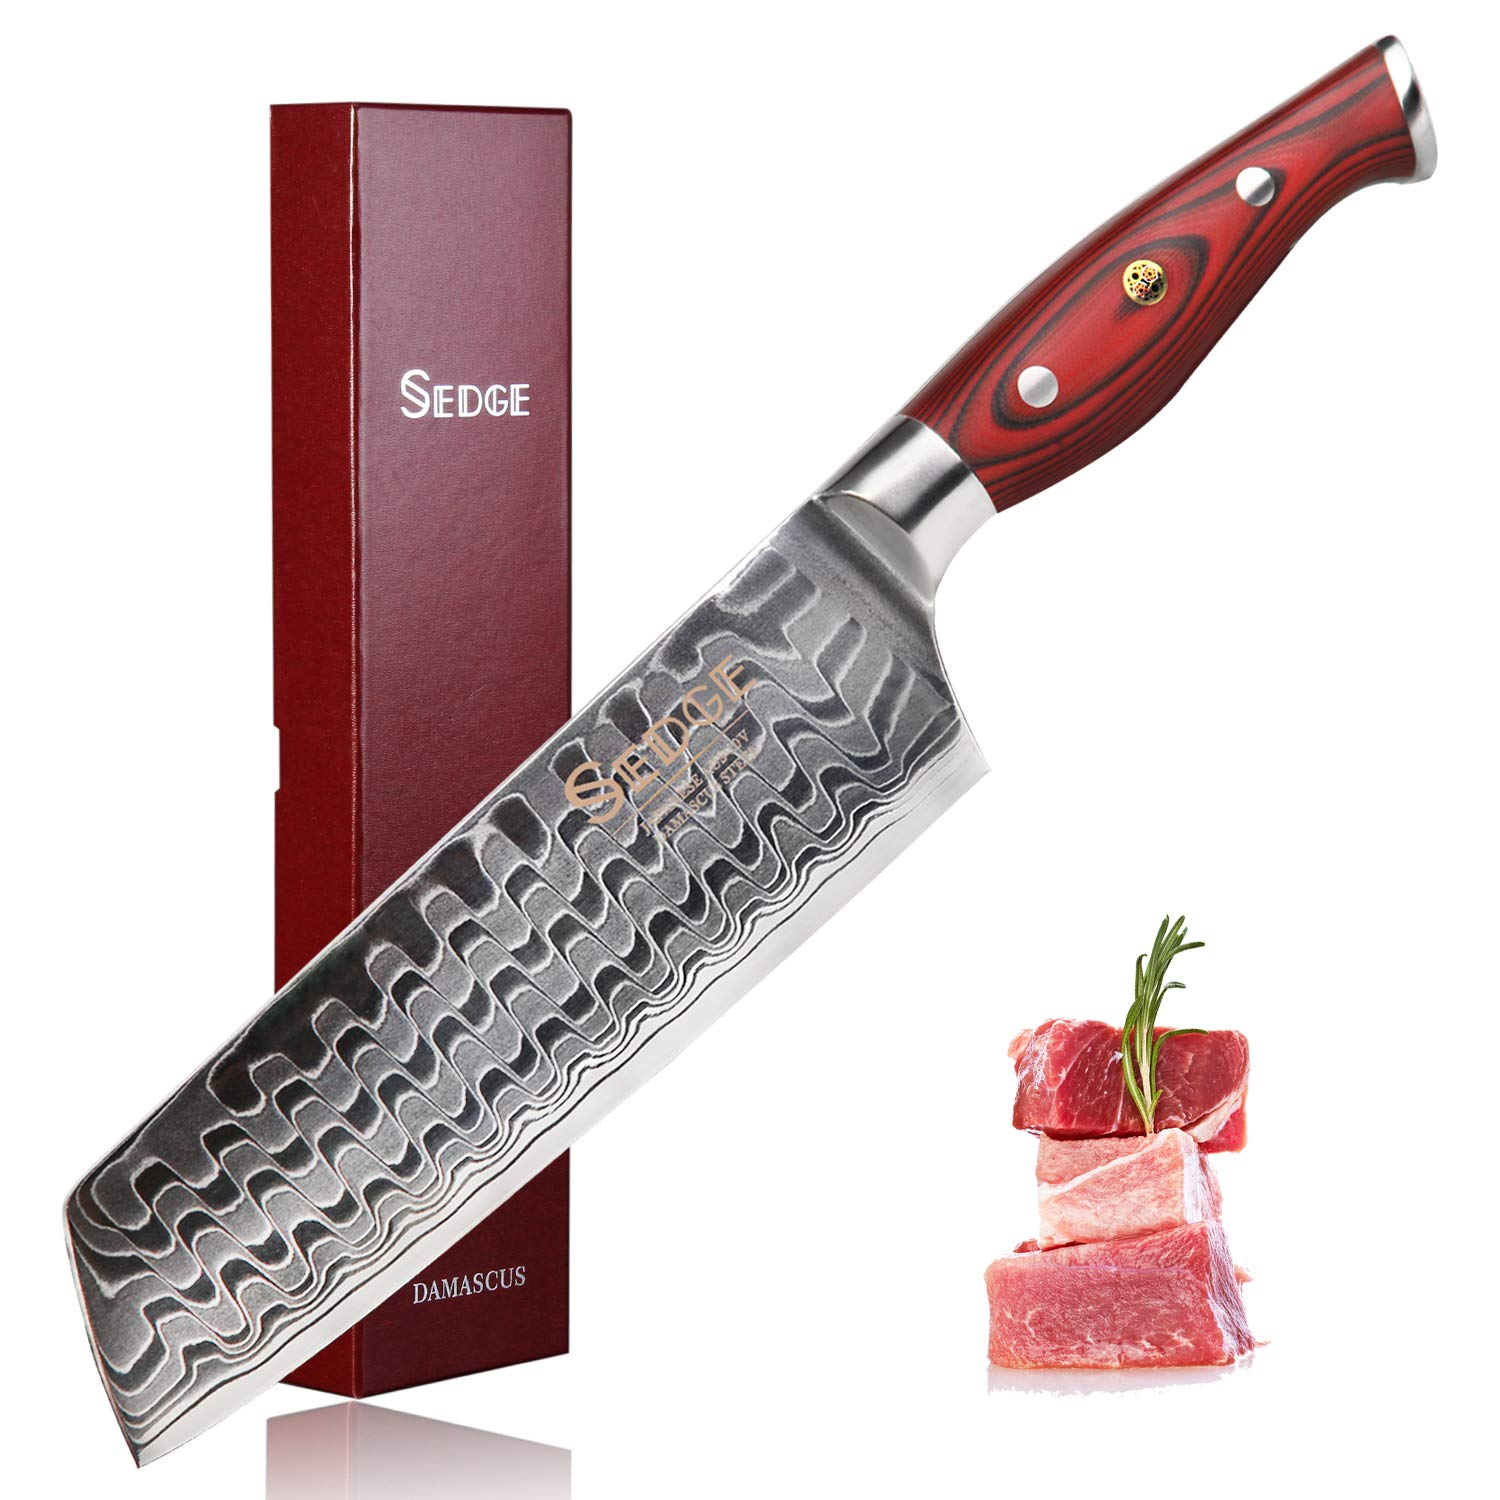 SEDGE Kiritsuke Knife 7 Inch - Nakiri Vegetable Cleaver Kitchen Knife - Ergonomic G10 Handle with Exquisite Gift Box - Japanese AUS-10 High Carbon Damascus Stainless Steel - SD-R Series by SEDGE